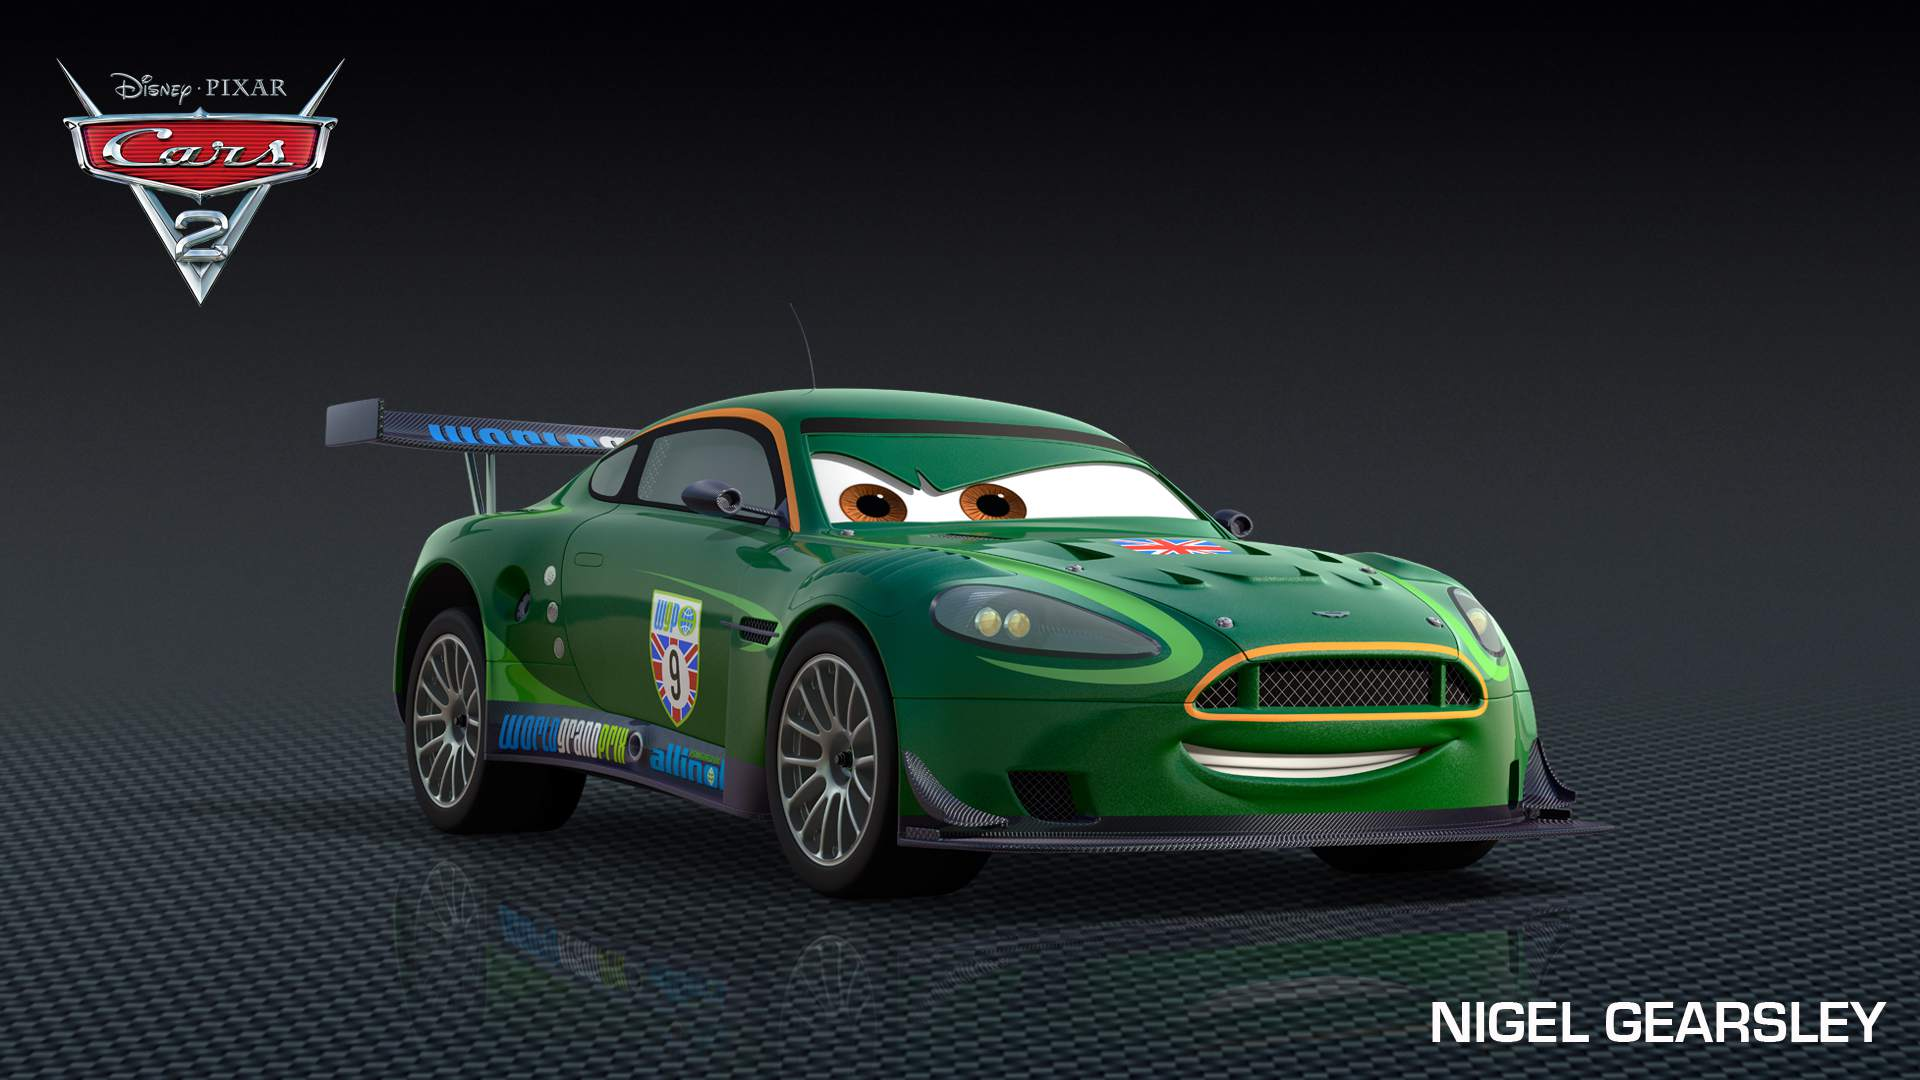 Nigel Gearsley Is A Character In The Disney Pixar Movie Cars 2